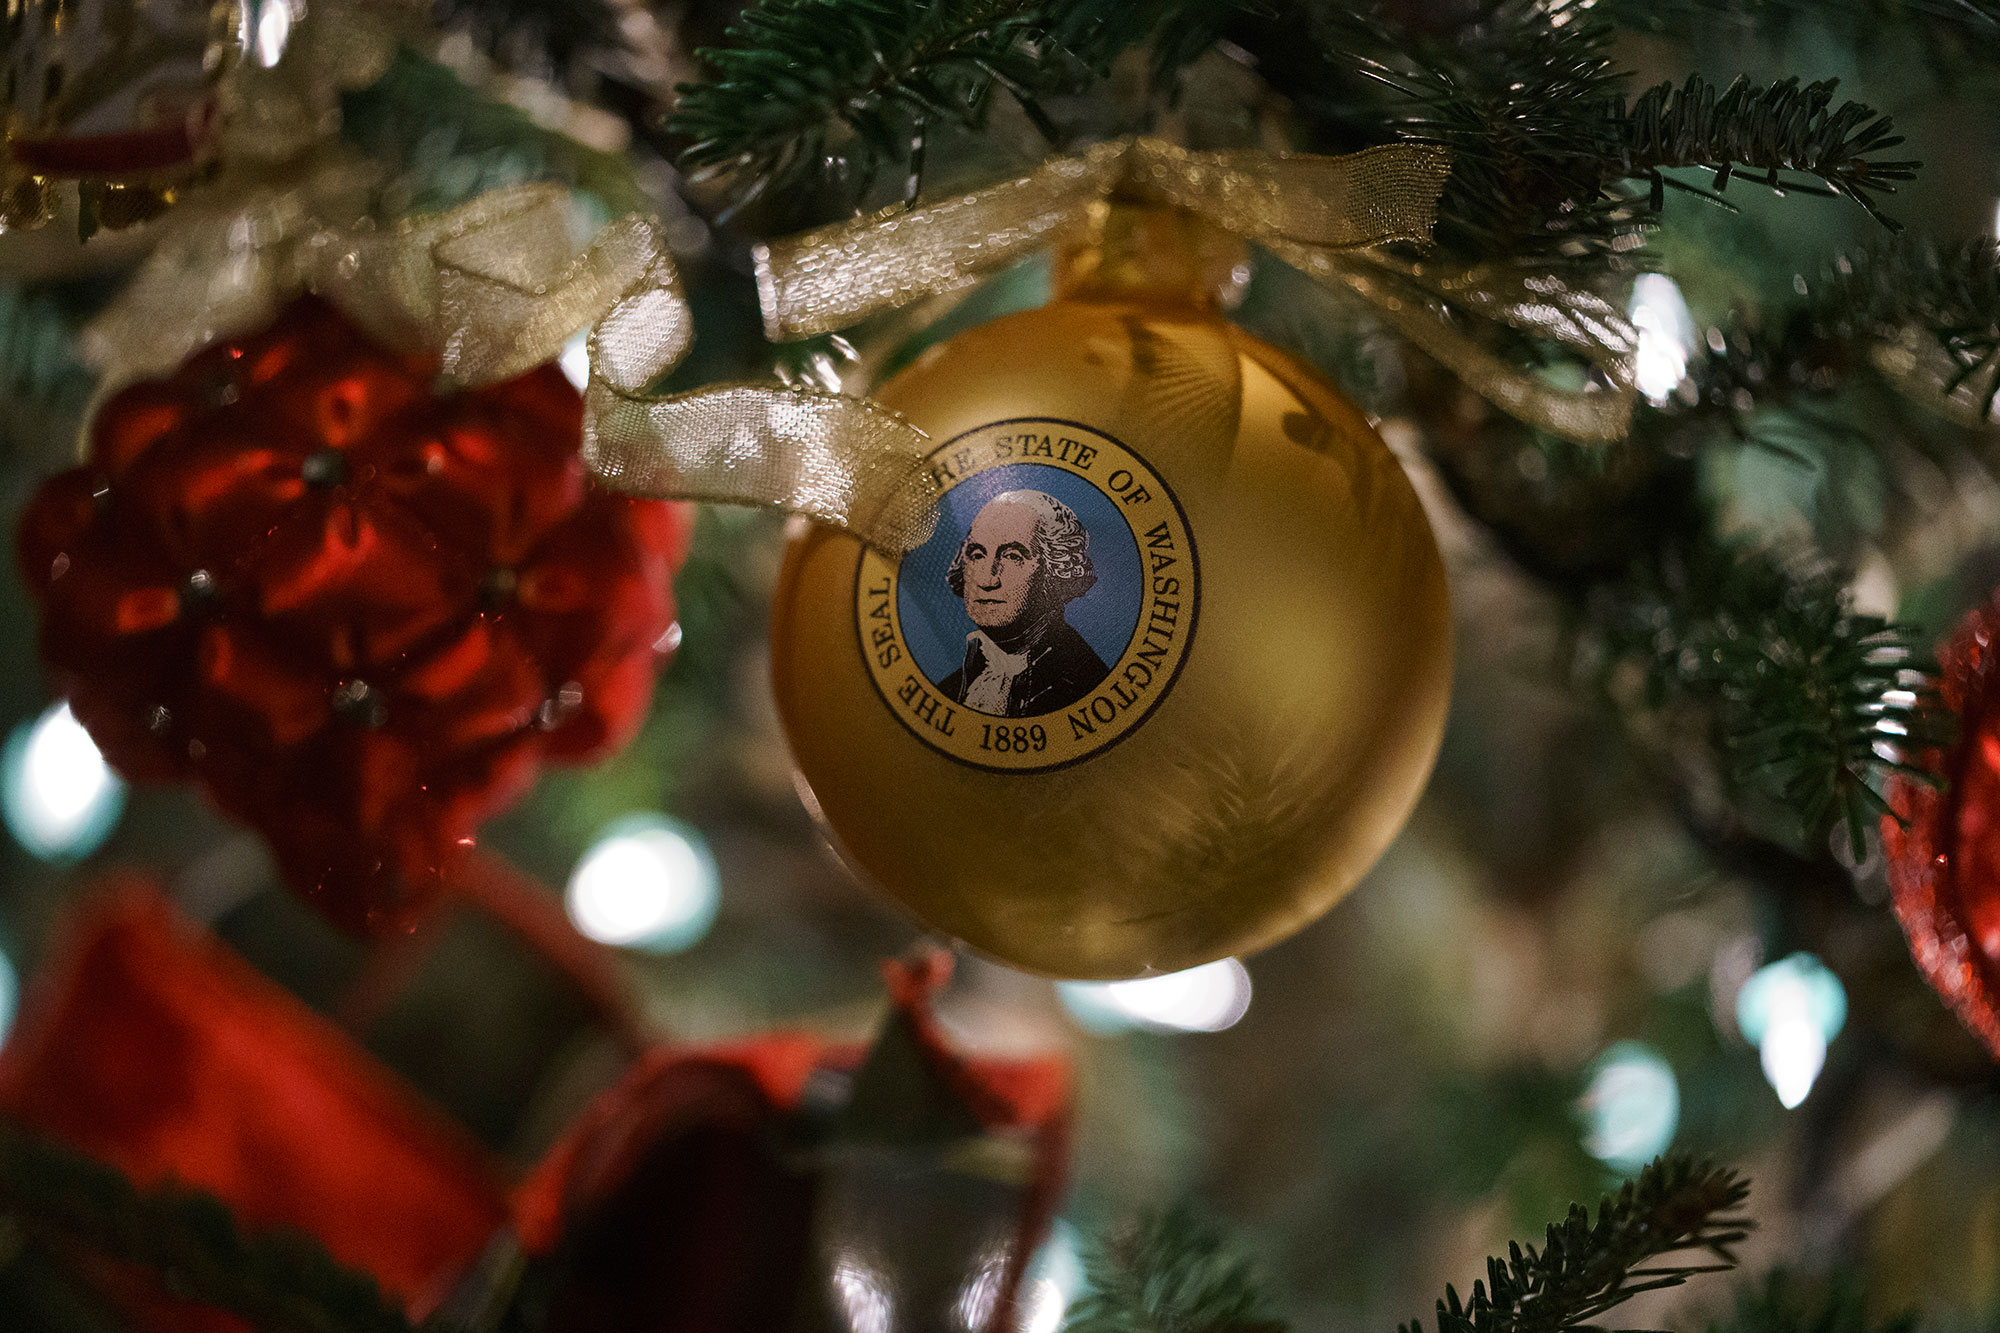 <div class='meta'><div class='origin-logo' data-origin='none'></div><span class='caption-text' data-credit='Carolyn Kaster/AP Photo'>An ornament with an image of President George Washington is seen during the 2018 Christmas preview at the White House in Washington, Monday, Nov. 26, 2018.</span></div>